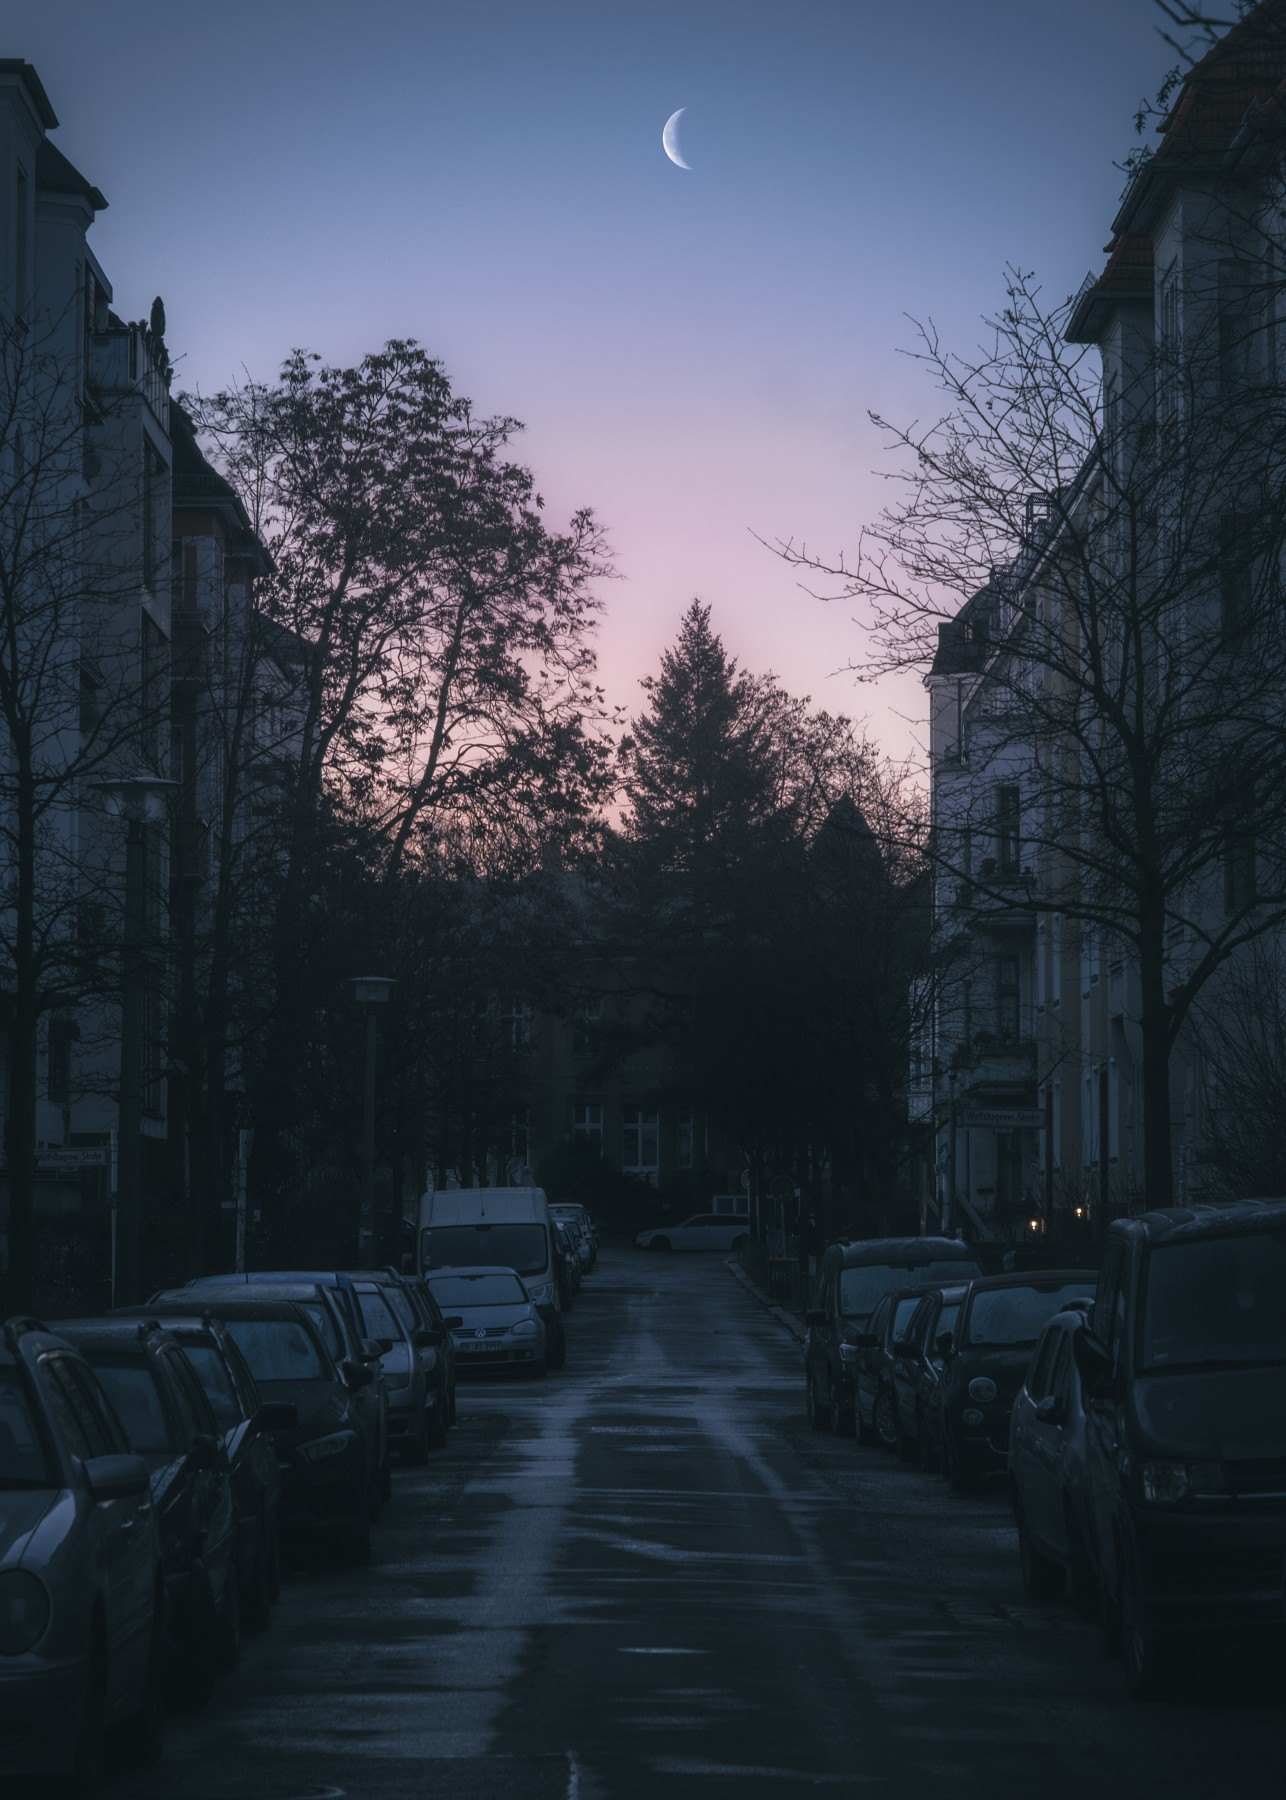 Dawn in Pankow